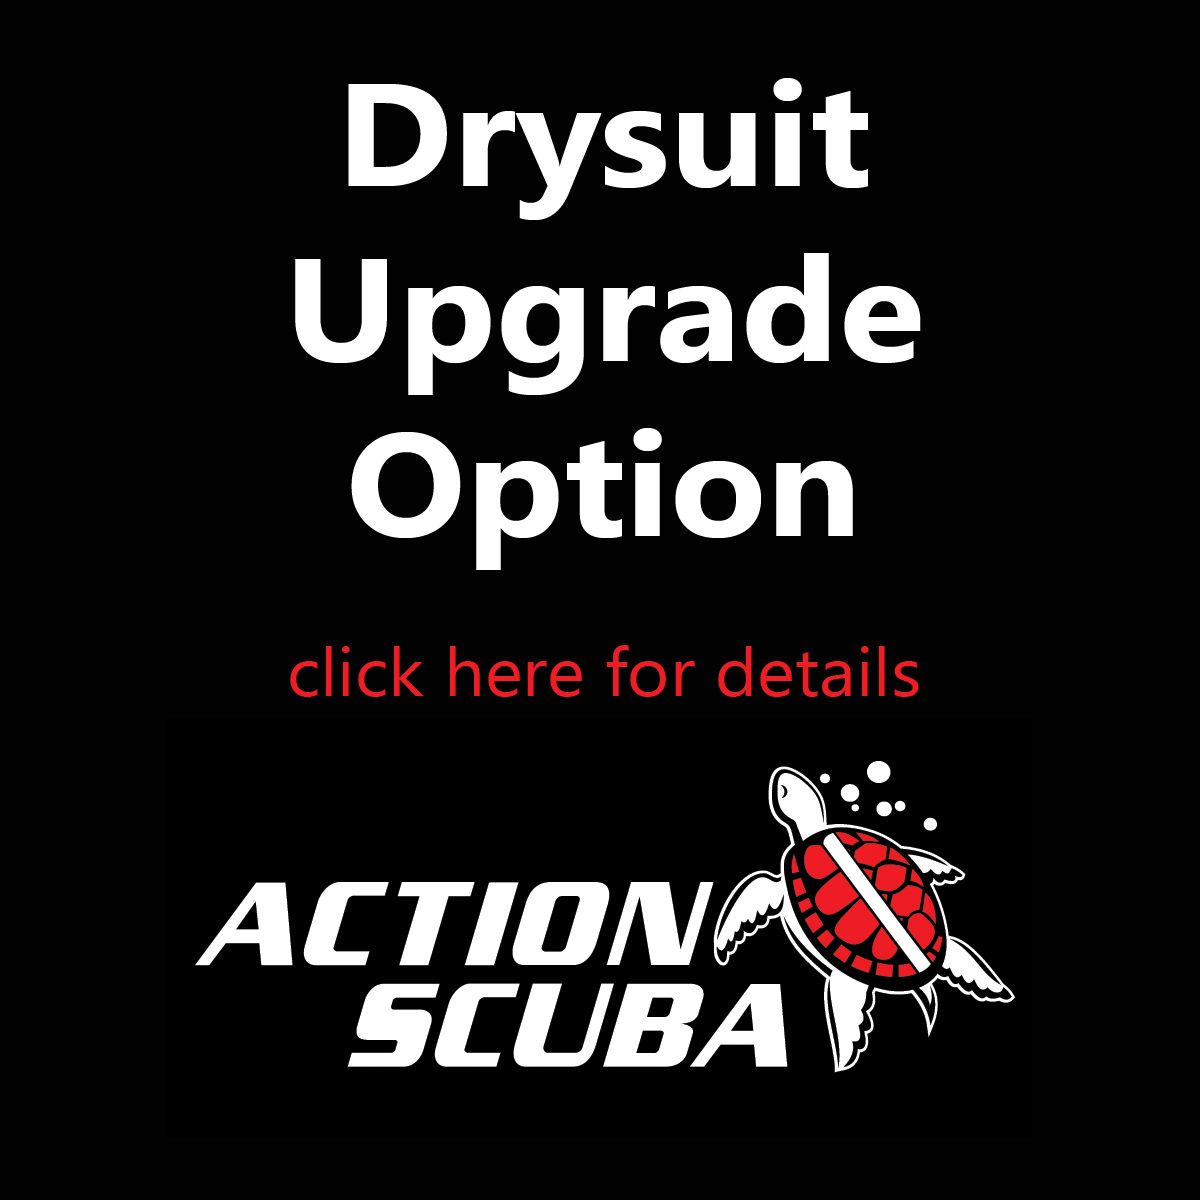 Learn to scuba dive in a drysuit